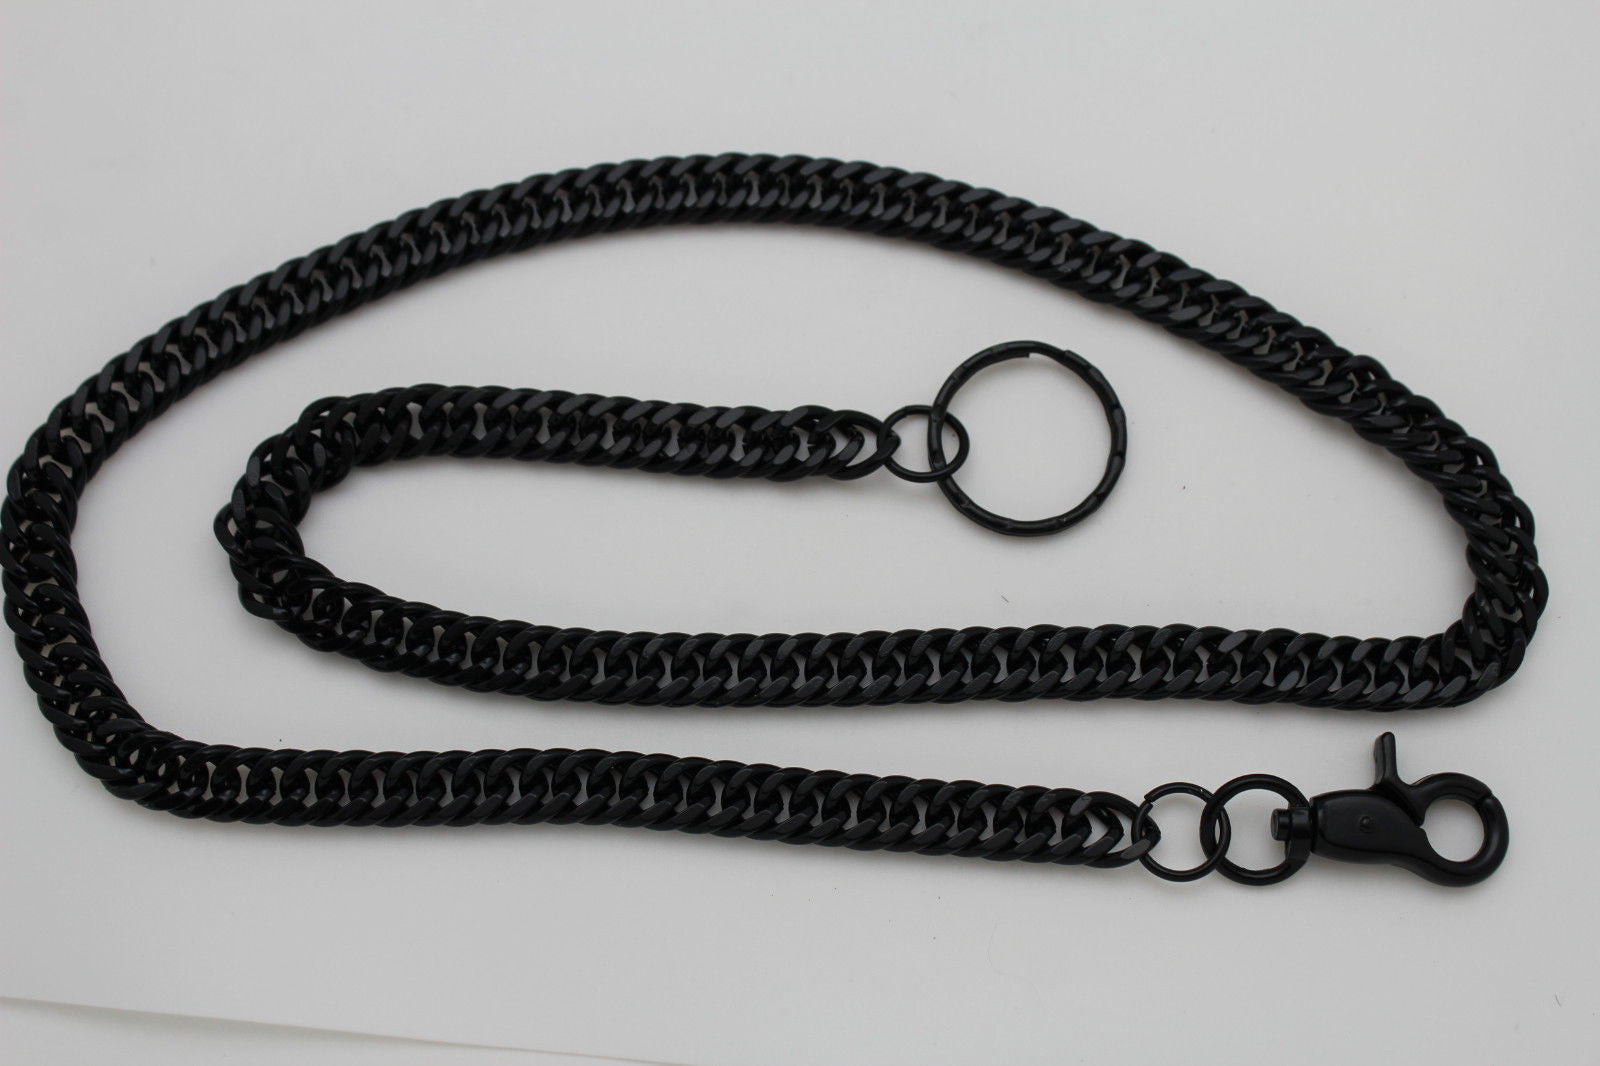 Black Metal Links Extra Long Wallet Chains Keychain Jeans Biker Motorc Alwaystyle4you